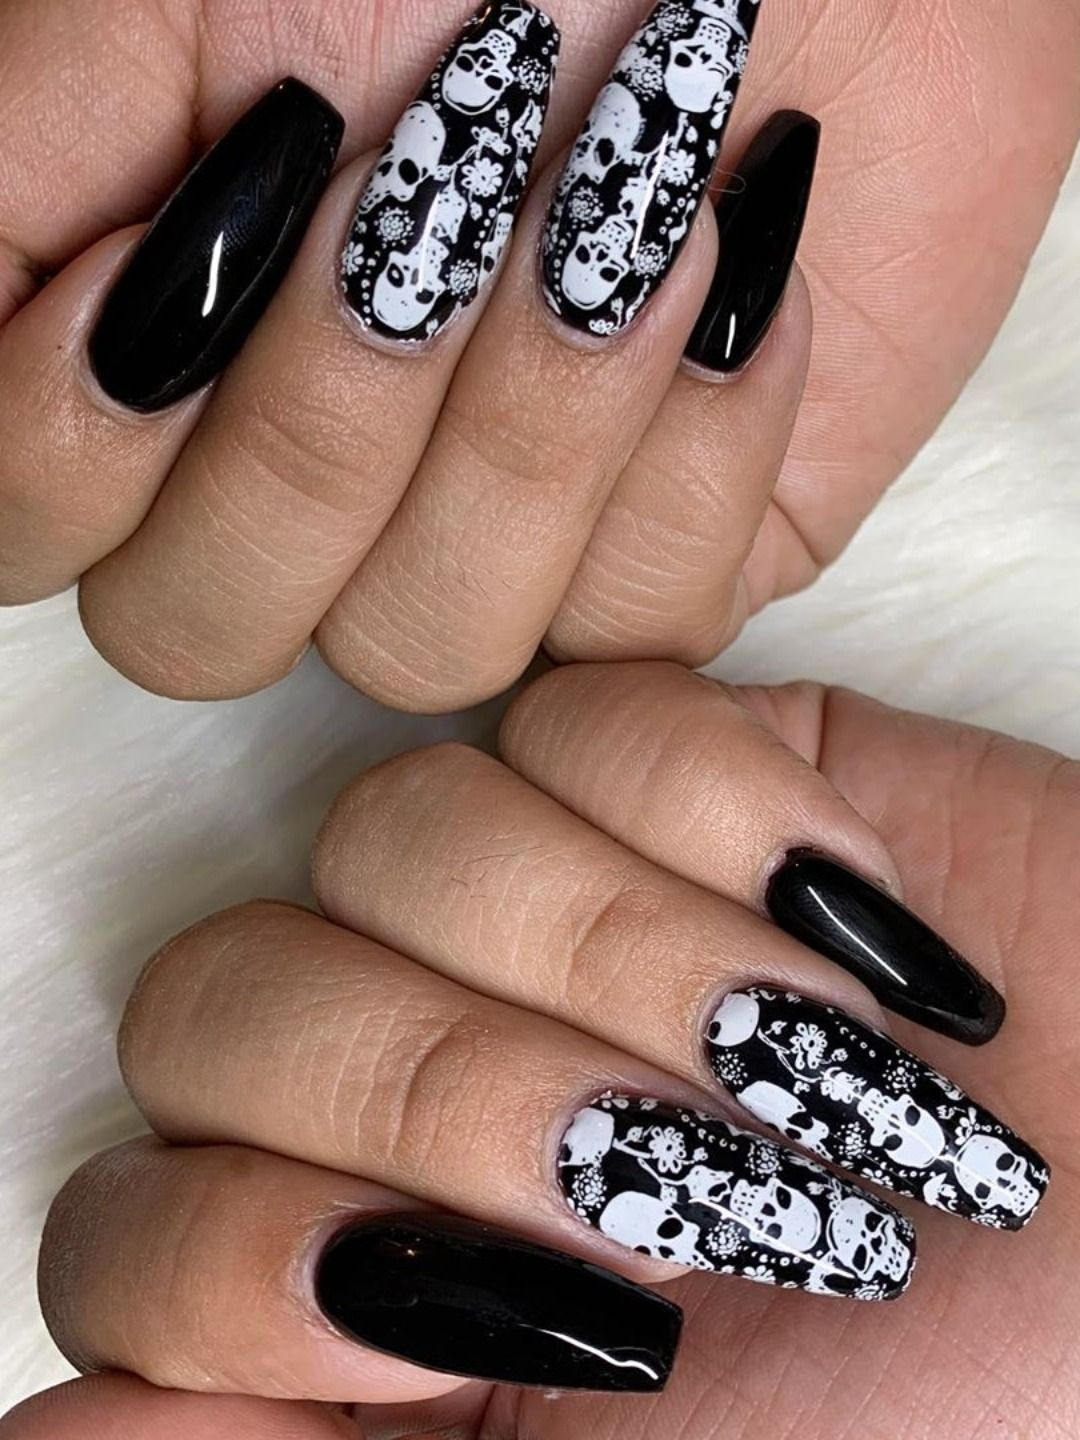 Halloween black coffin nails 2019!   Nails, Candy corn ...